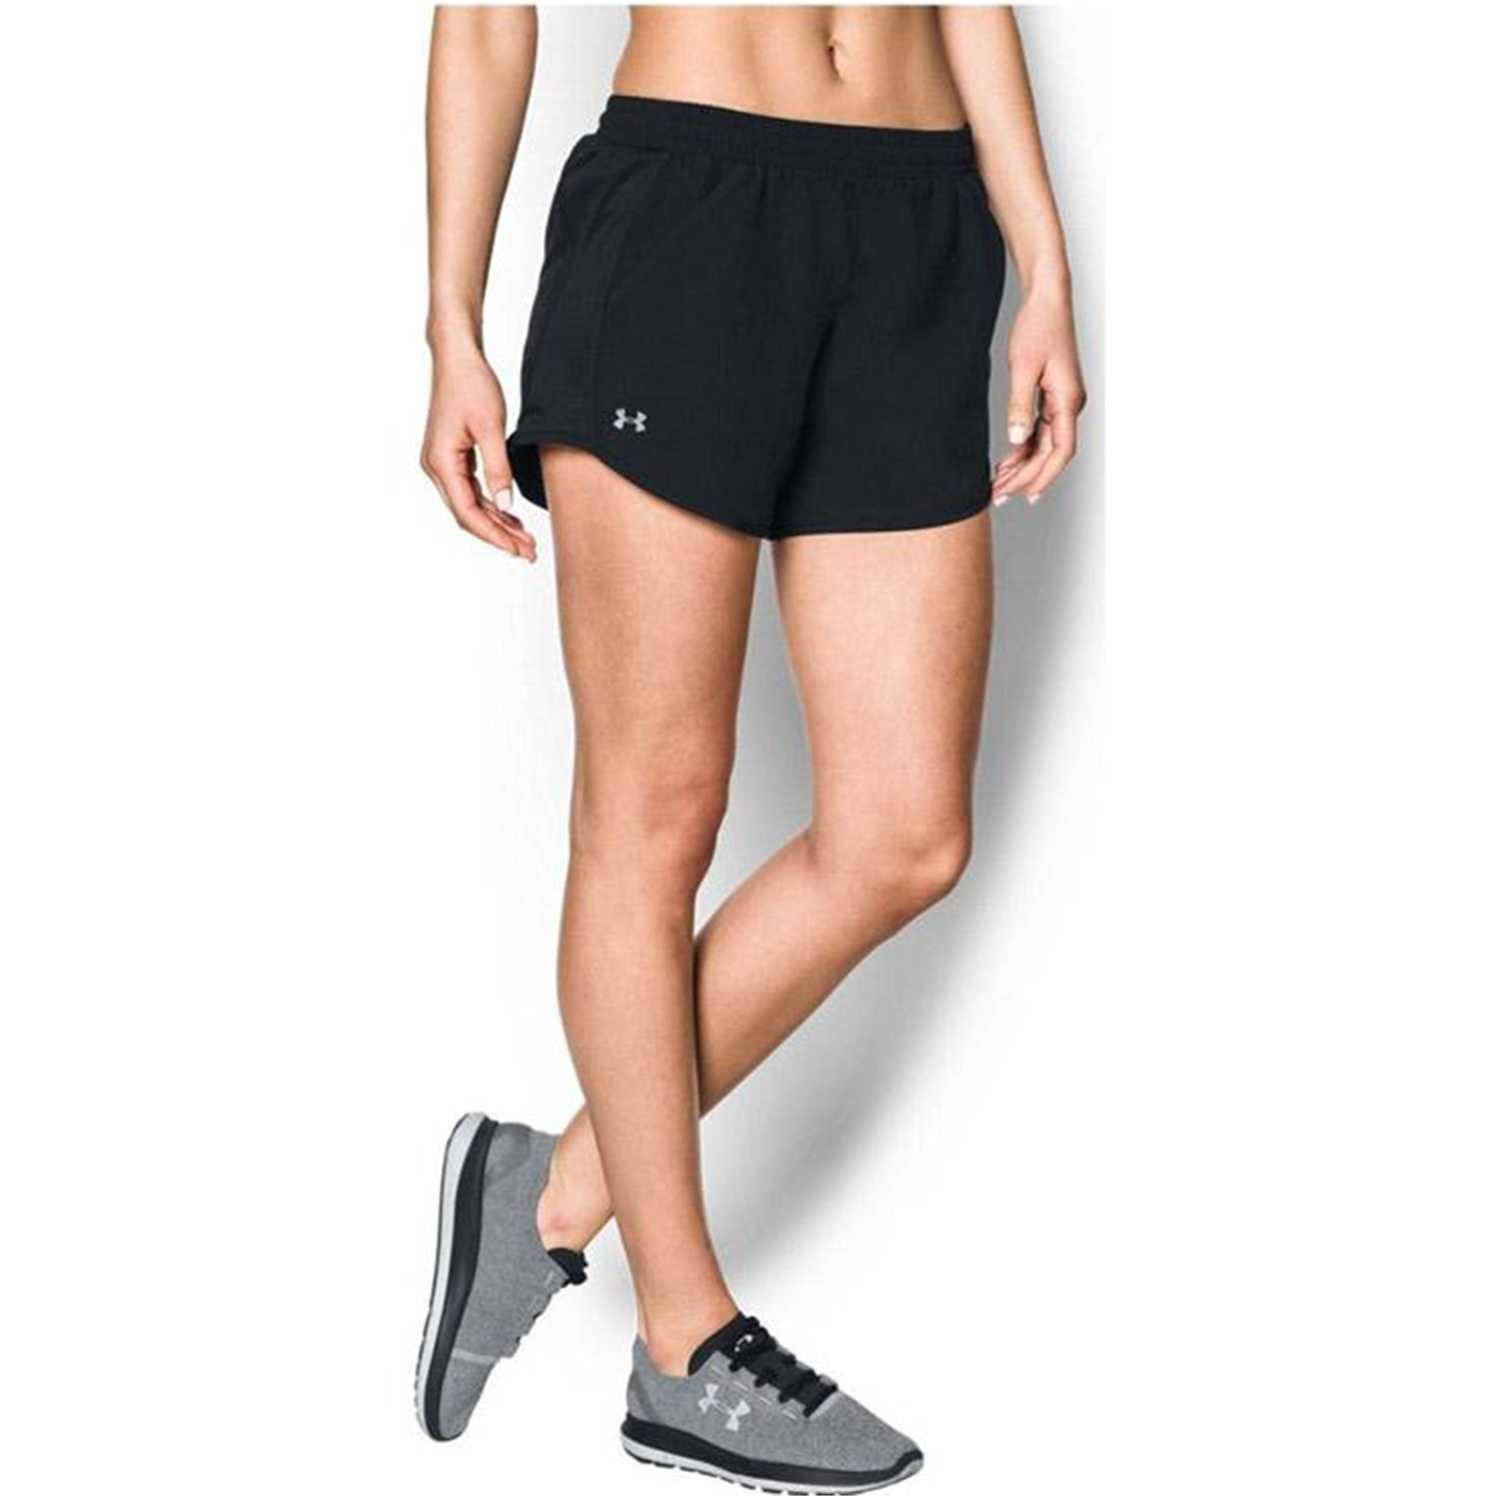 13b23af0ec8 Short de Mujer Under Armour Negro fly by short | platanitos.com